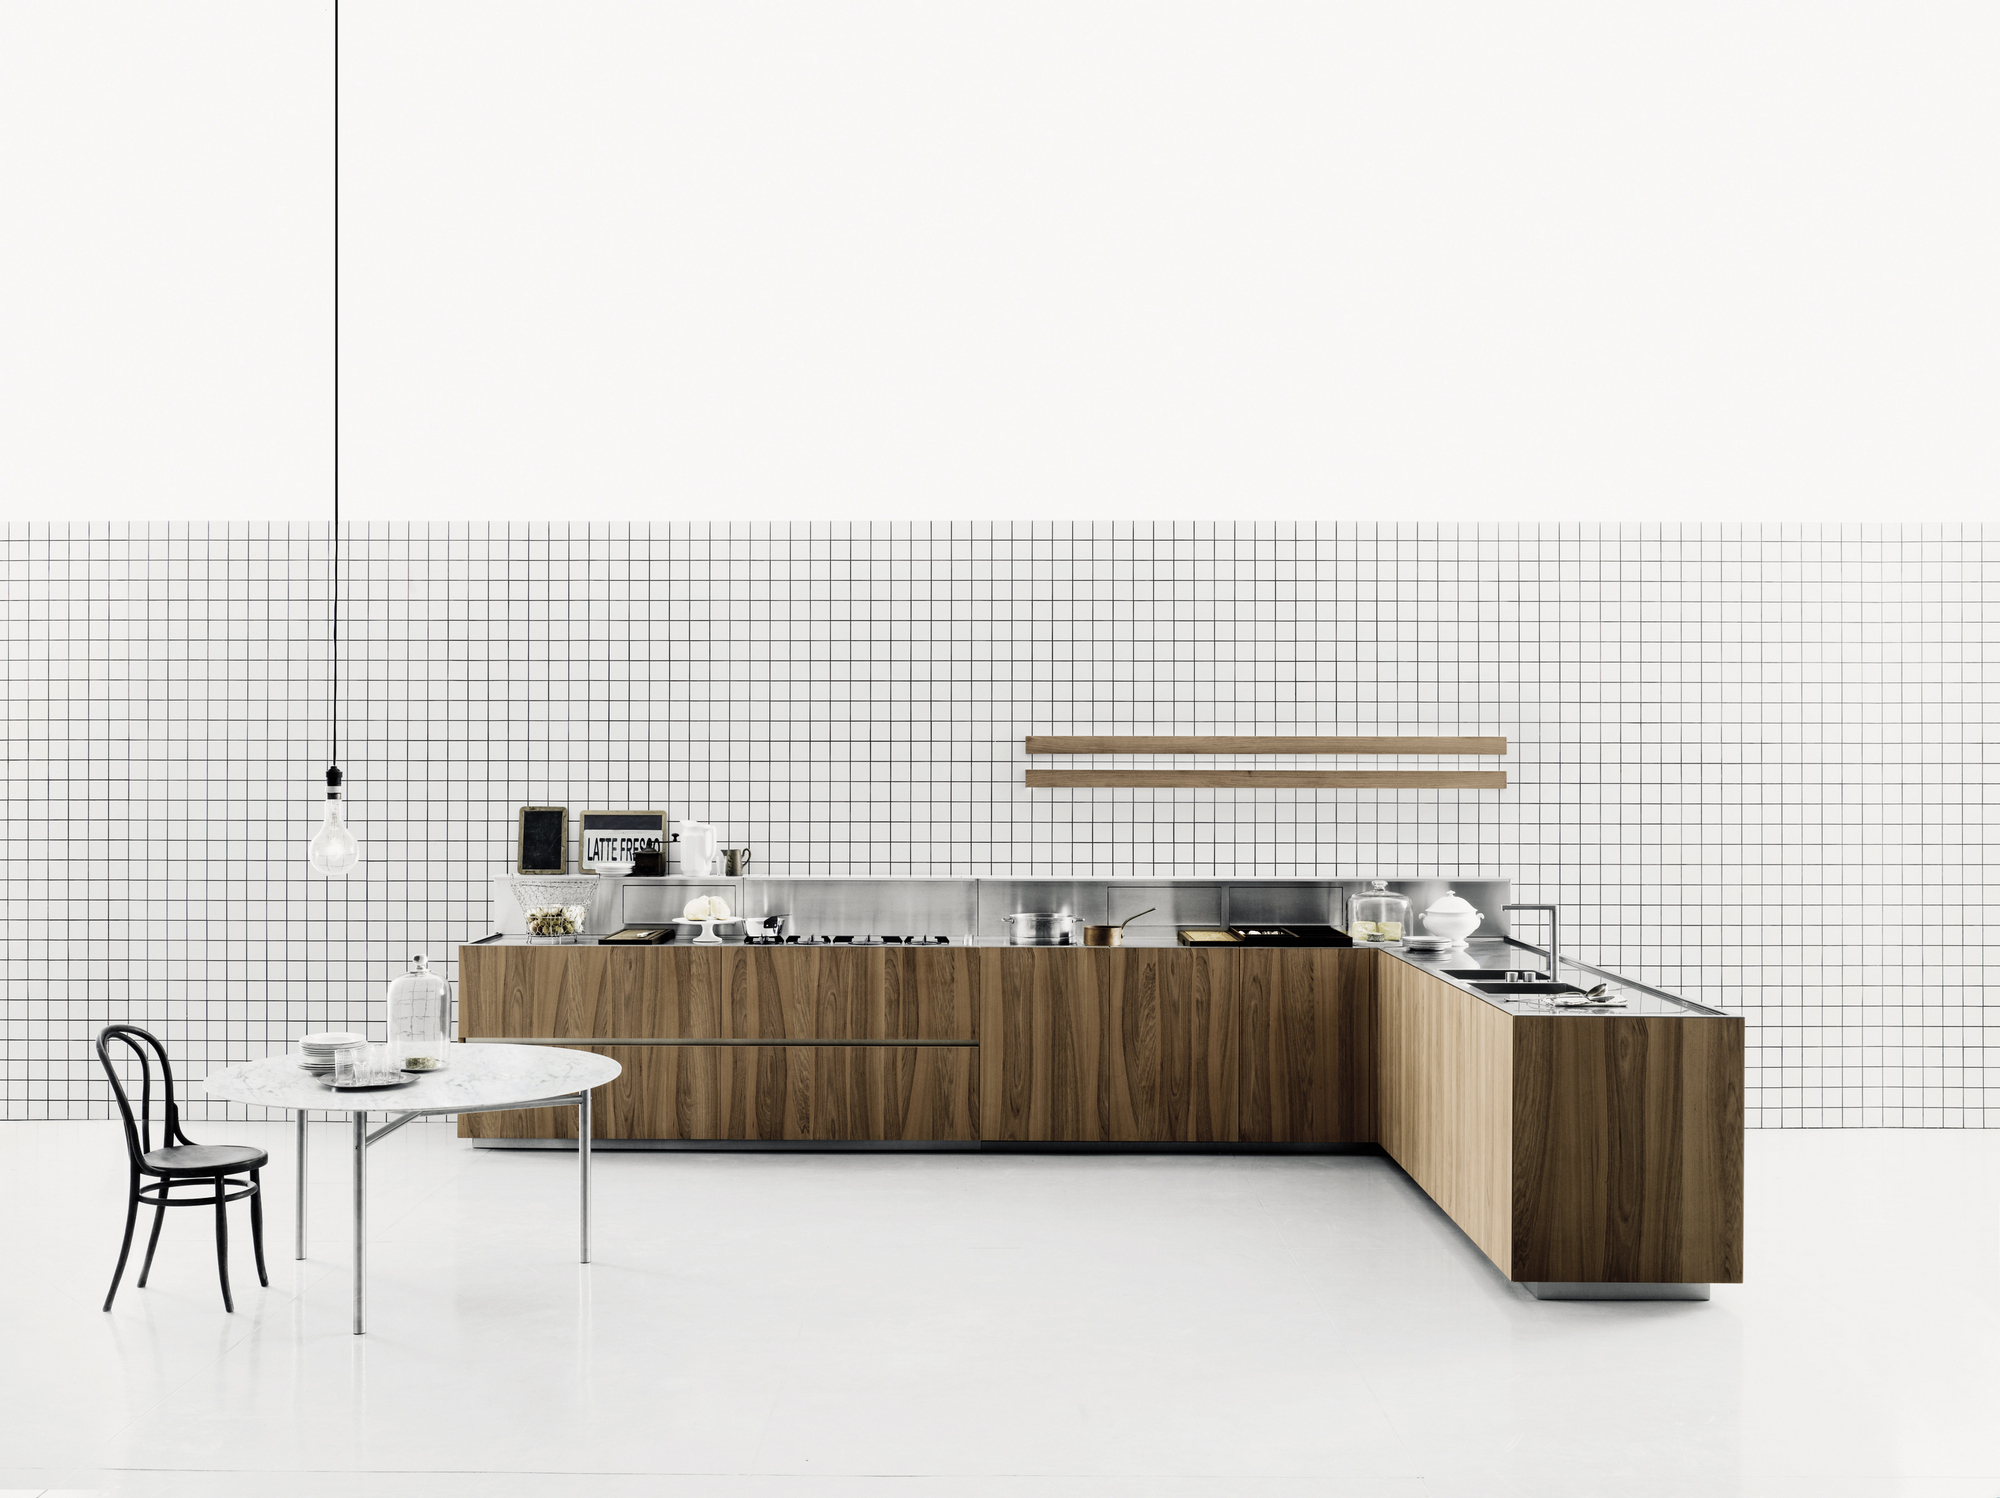 Cuisine Boffi Wood Veneer Kitchen K20 By Boffi Design Norbert Wangen